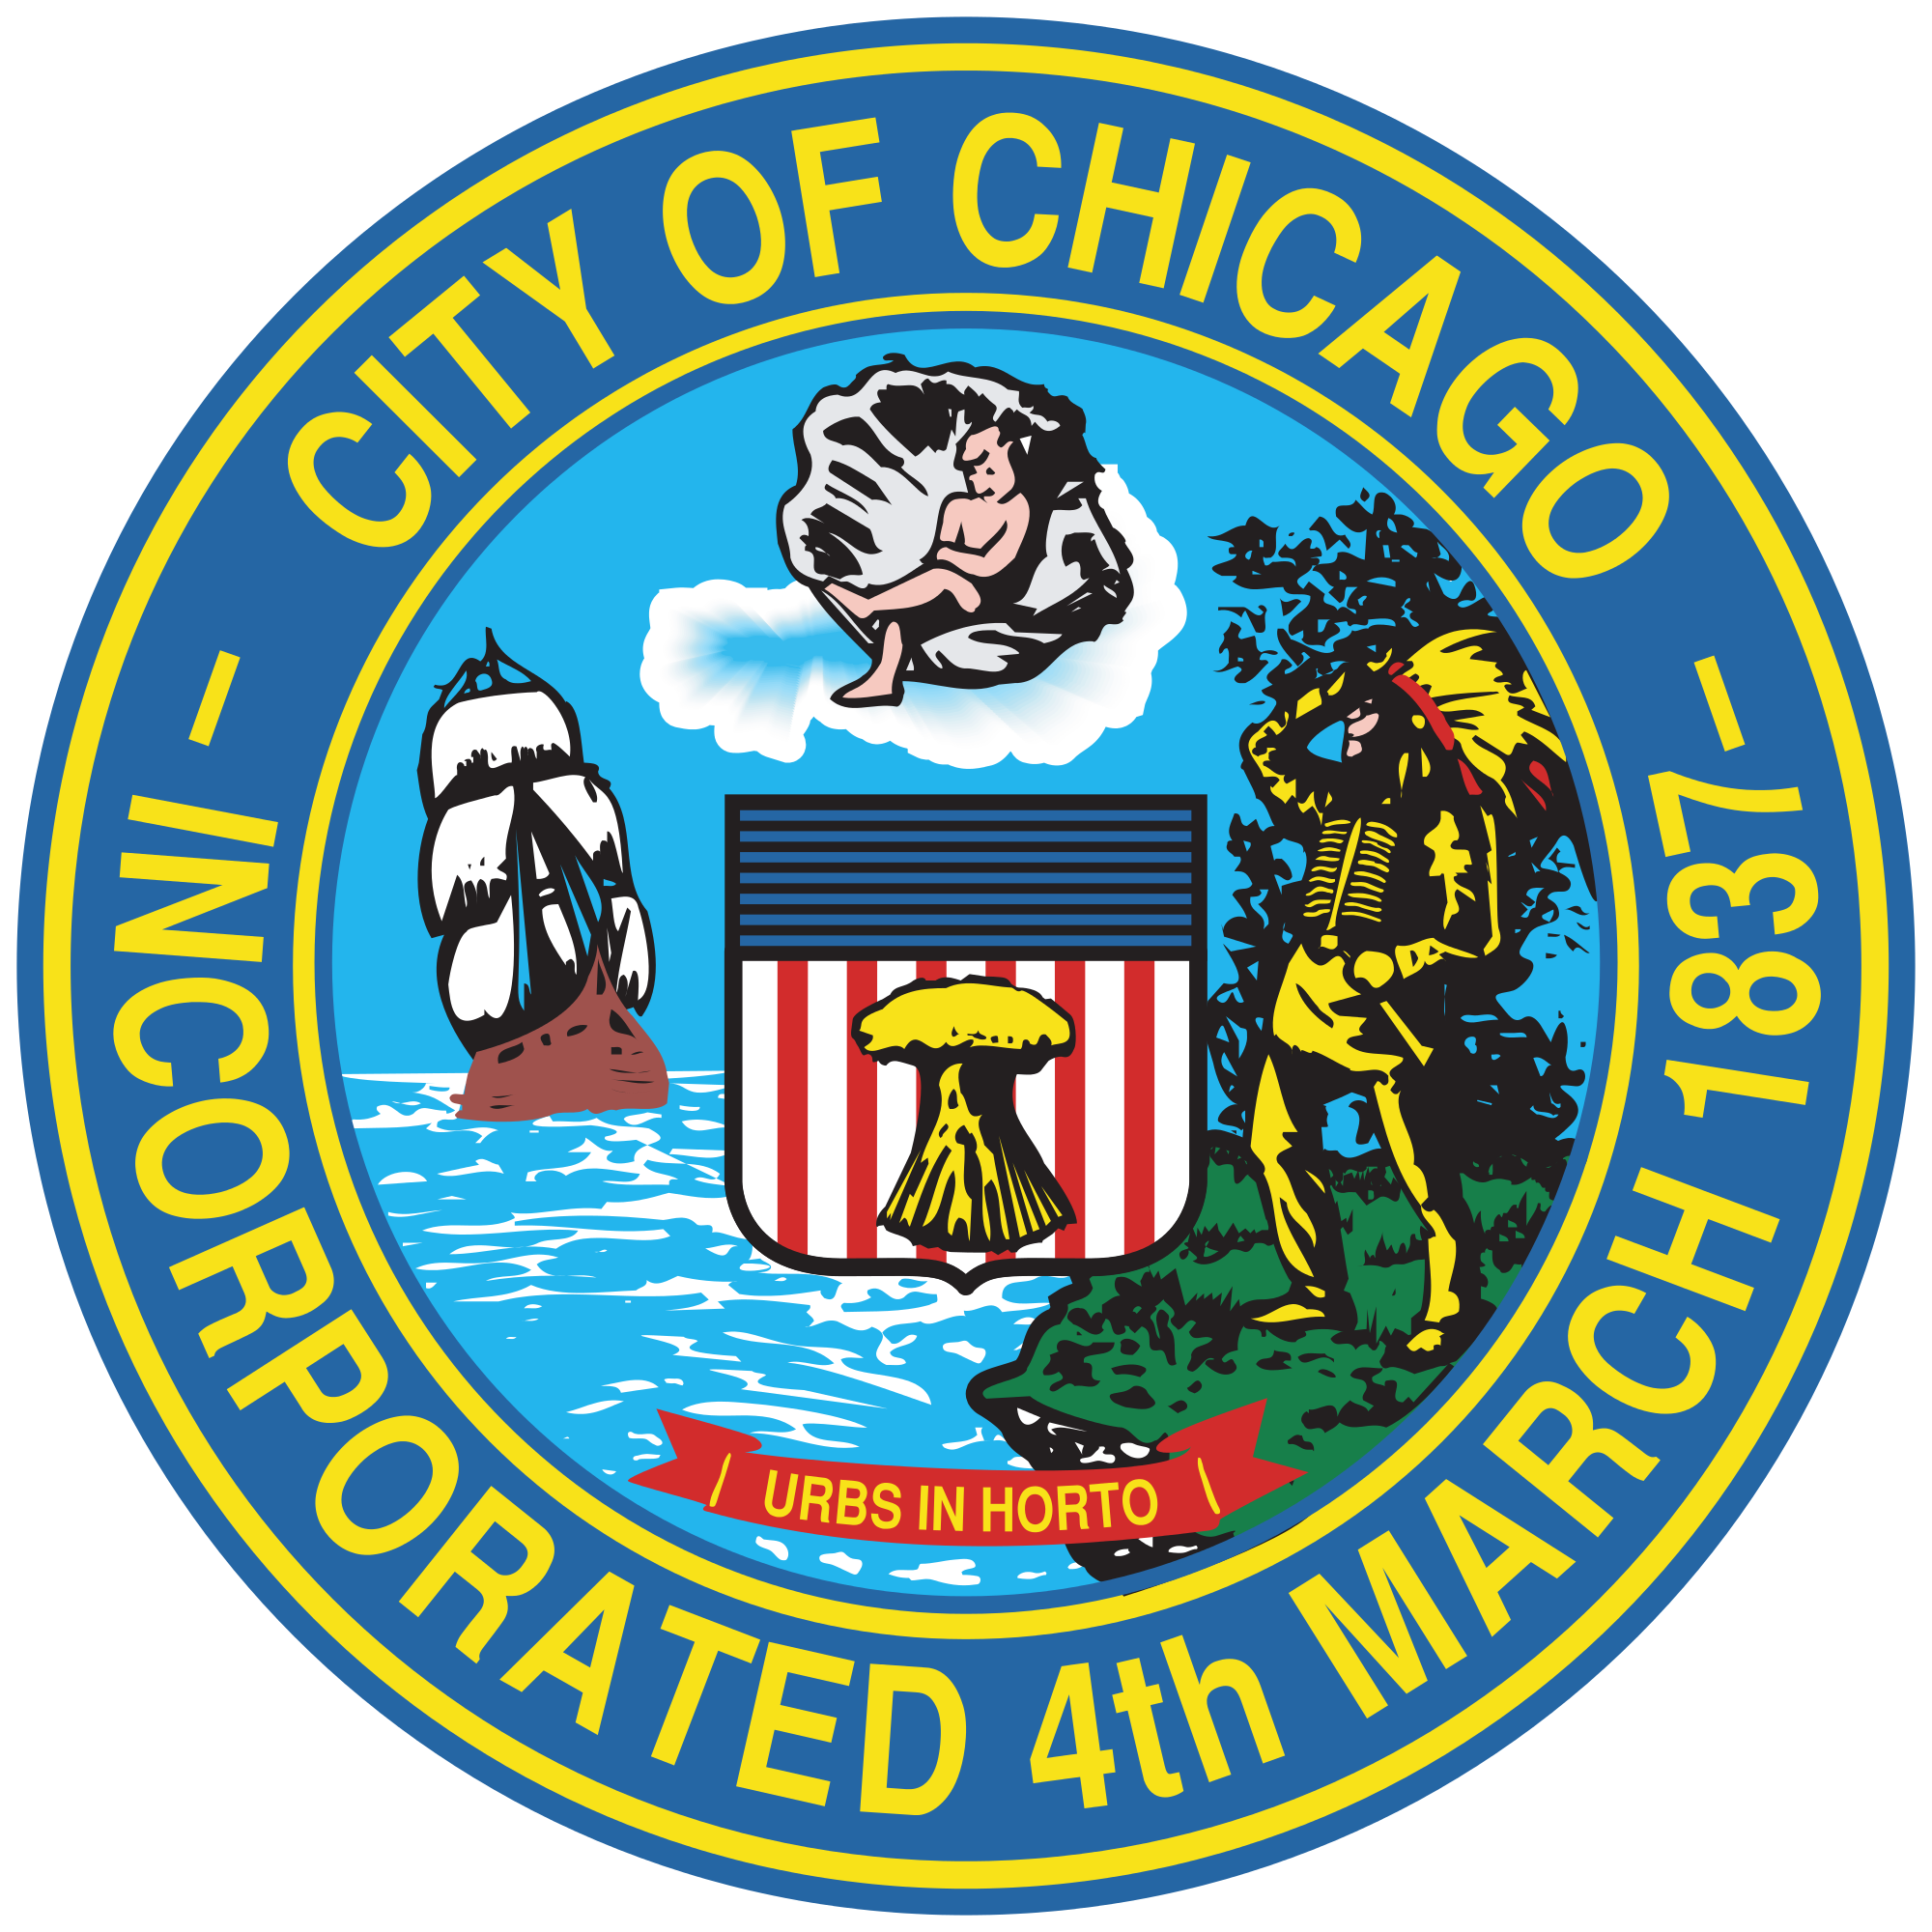 City of chicago seal-logo.png